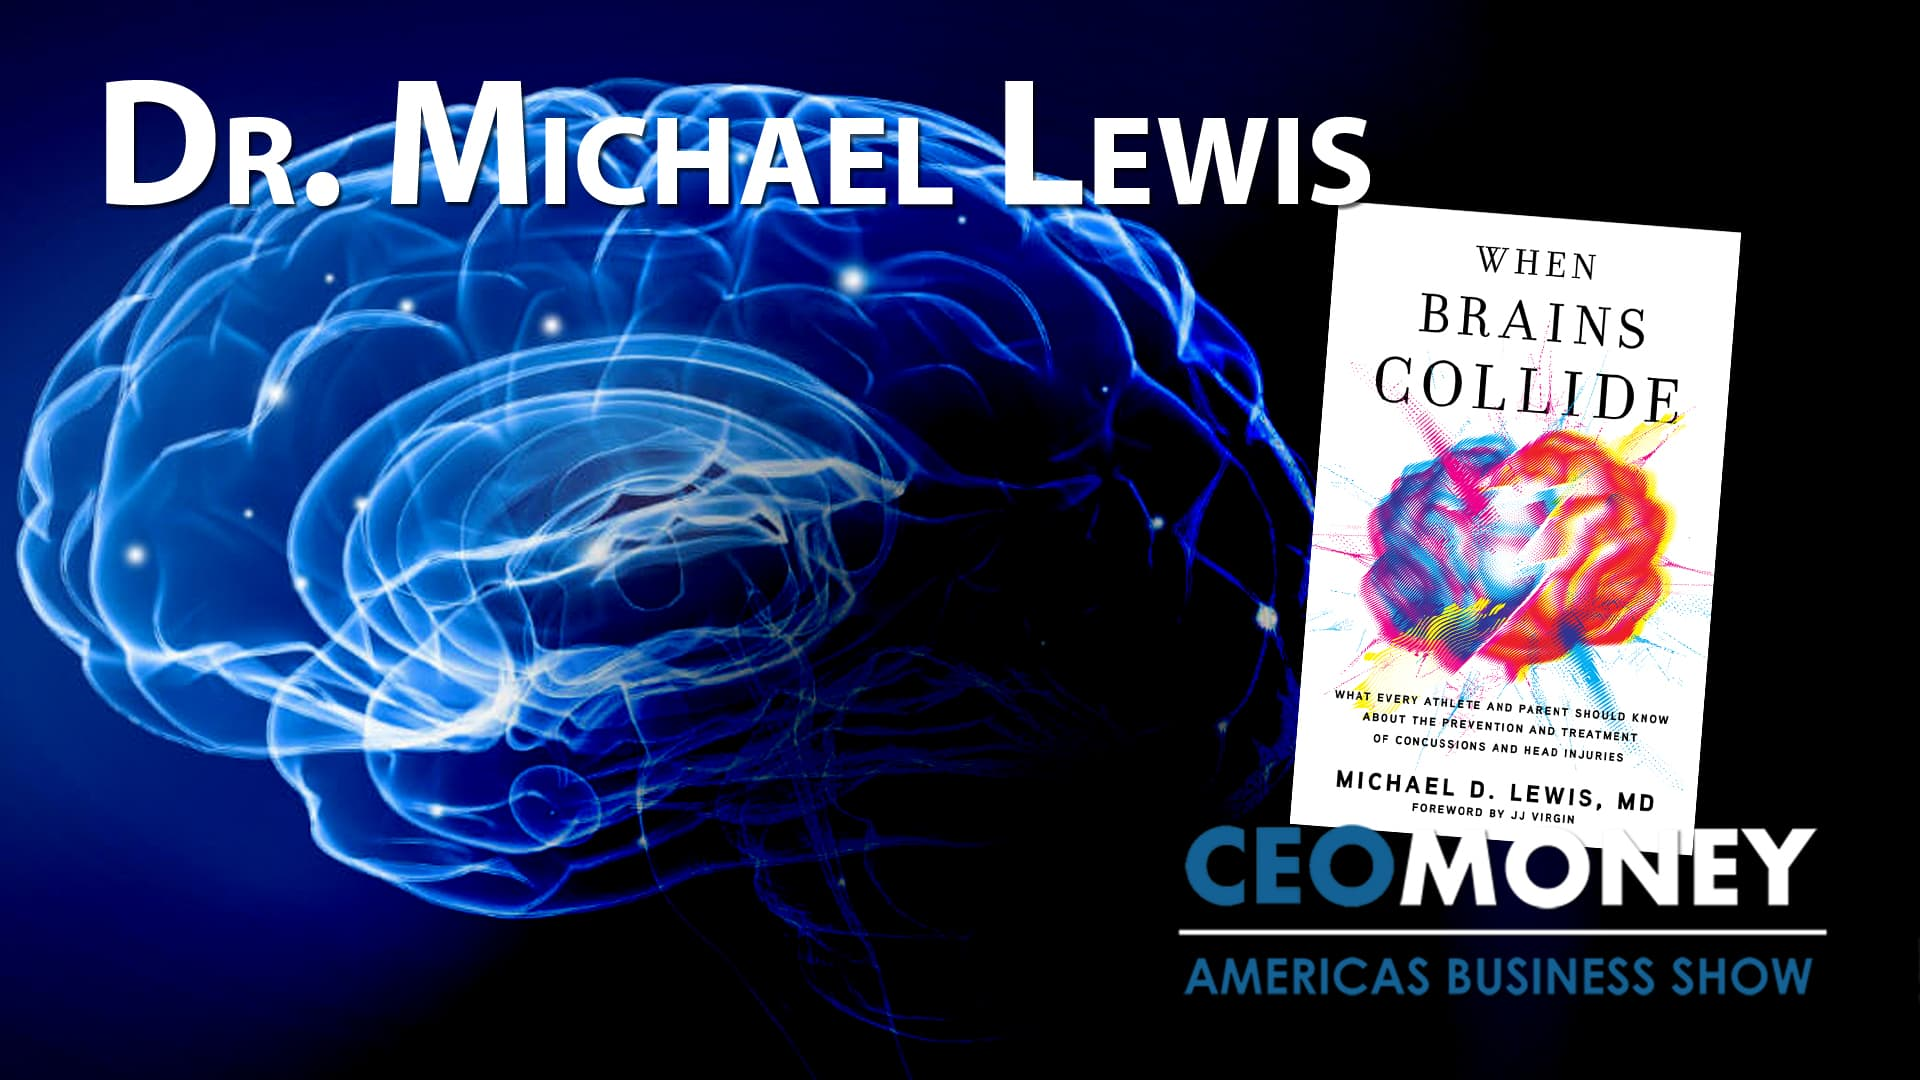 Dr Michael Lewis on how brain trauma and concussion can be helped by omega-3 fish oil and CBD oil